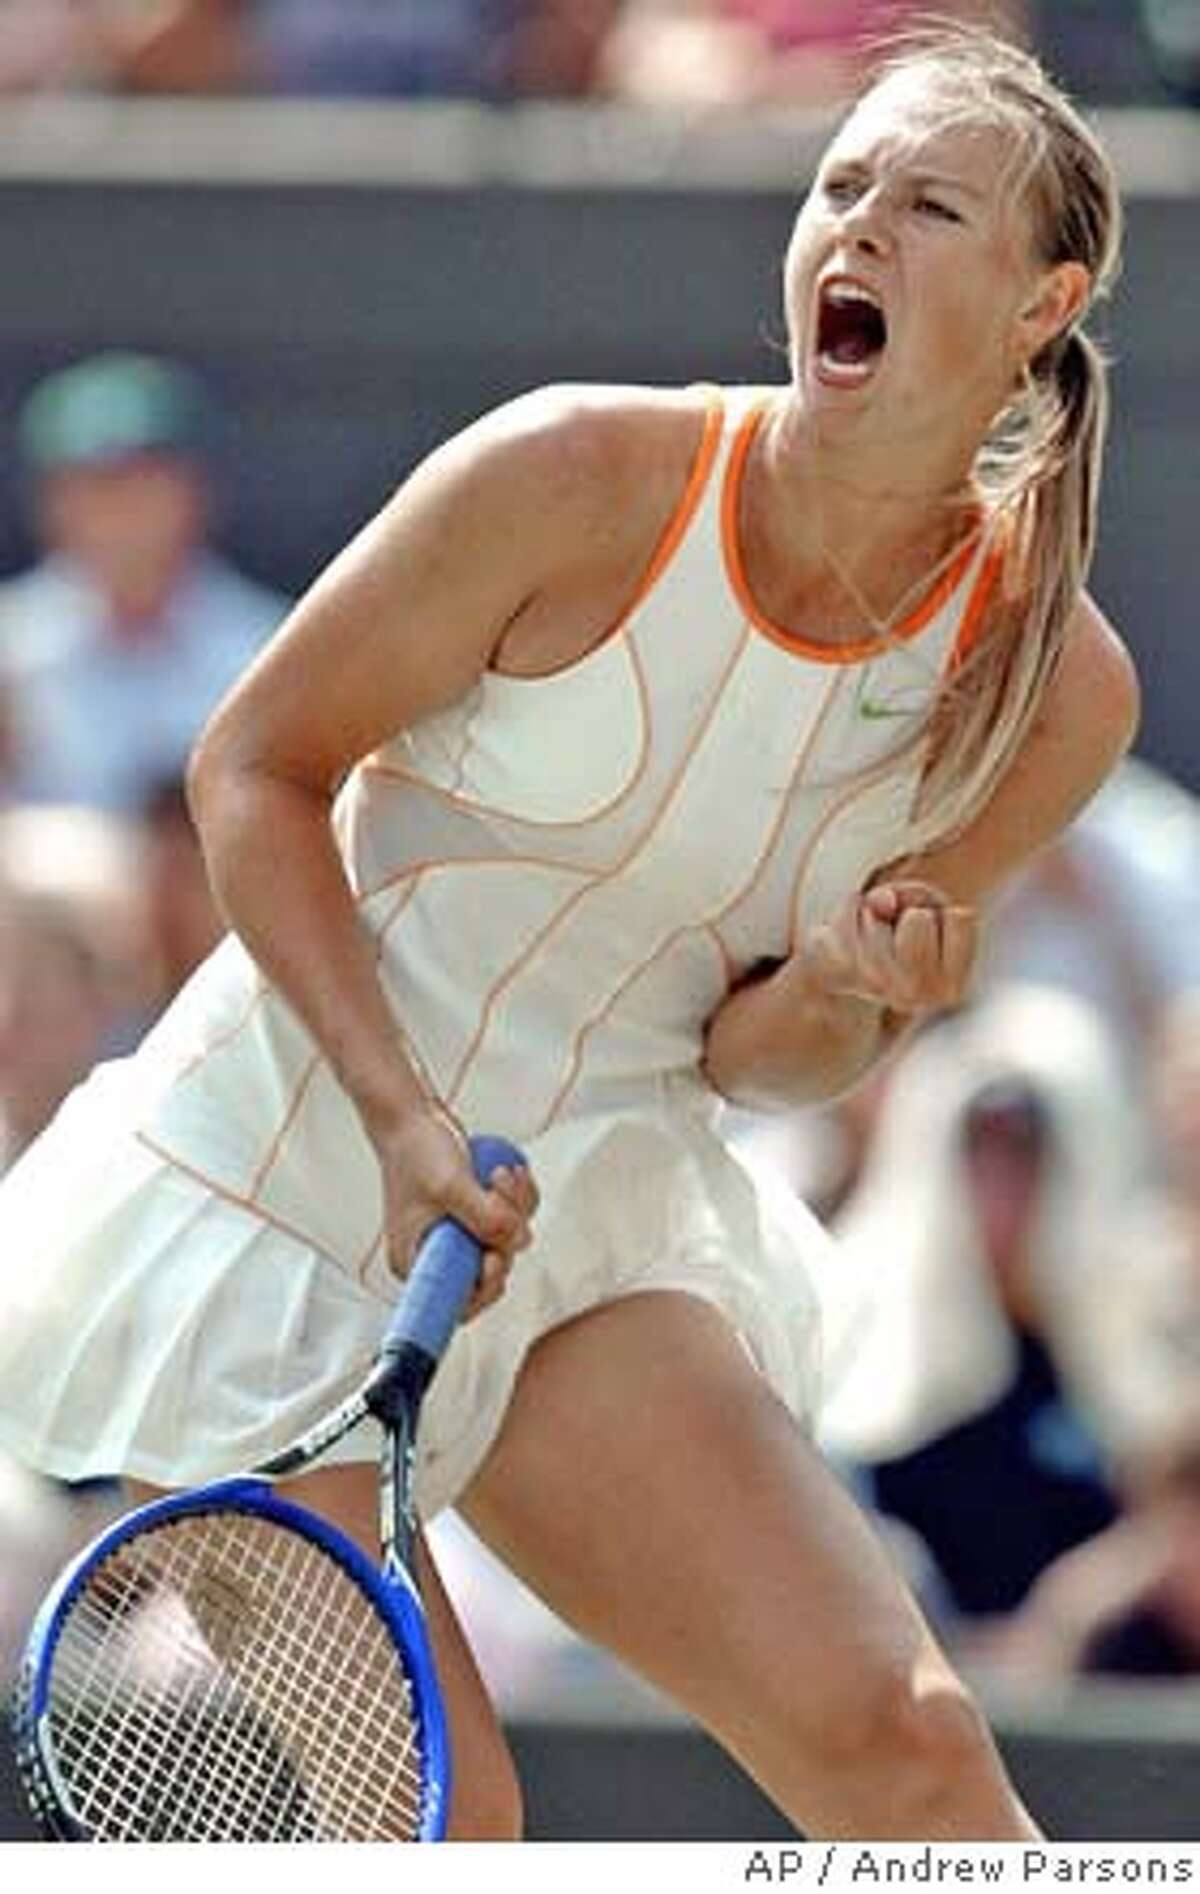 Russia's Maria Sharapova reacts after winning a point against France's Nathalie Dechy during her Women's Singles fourth round match at Wimbledon, England , Monday June 27, 2005. Sharapova won the match 6-4, 6-2. (AP Photo Andrew Parsons/PA) ** UNITED KINGDOM OUT EDITORIAL USE ONLY NO MOBILE PHONE USE **